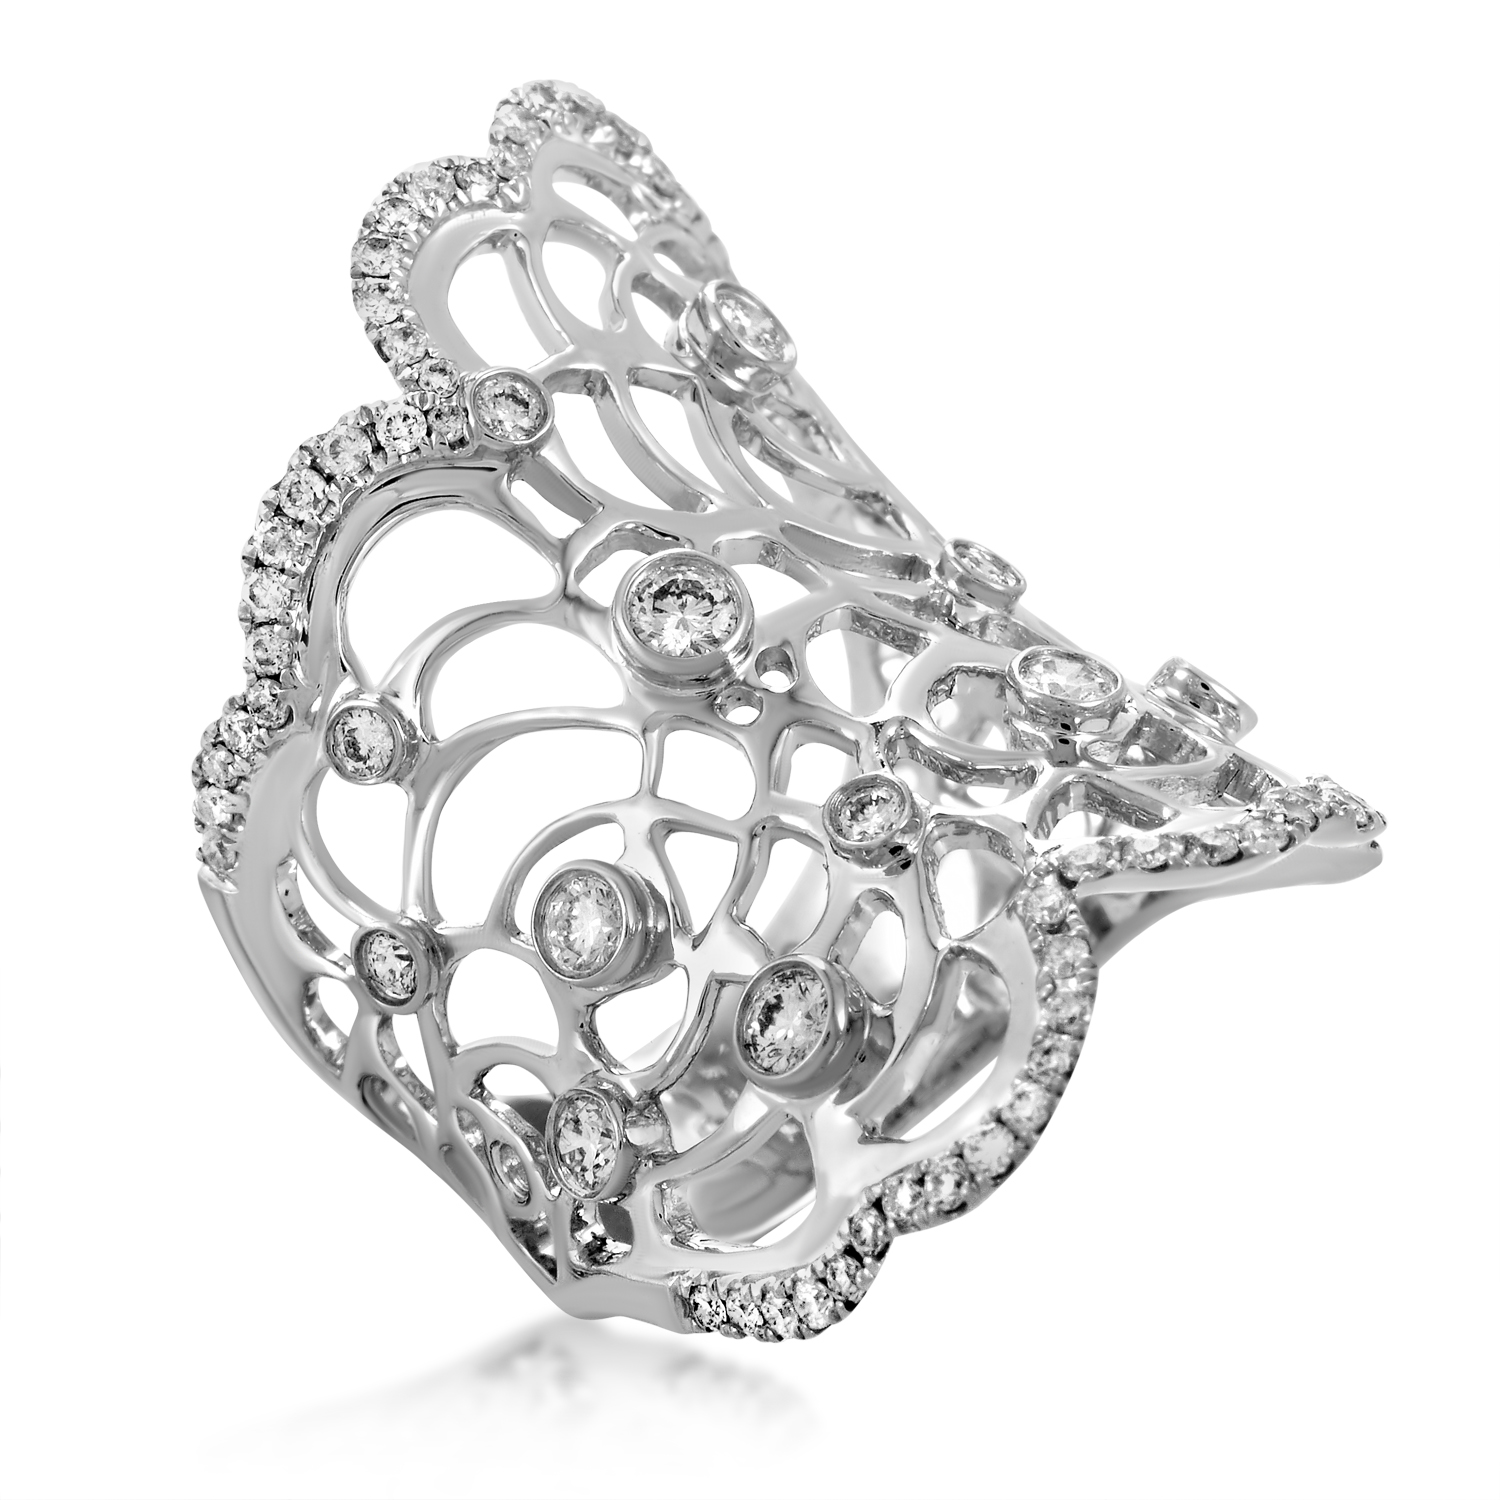 18K White Gold Fliligree Diamond Ring